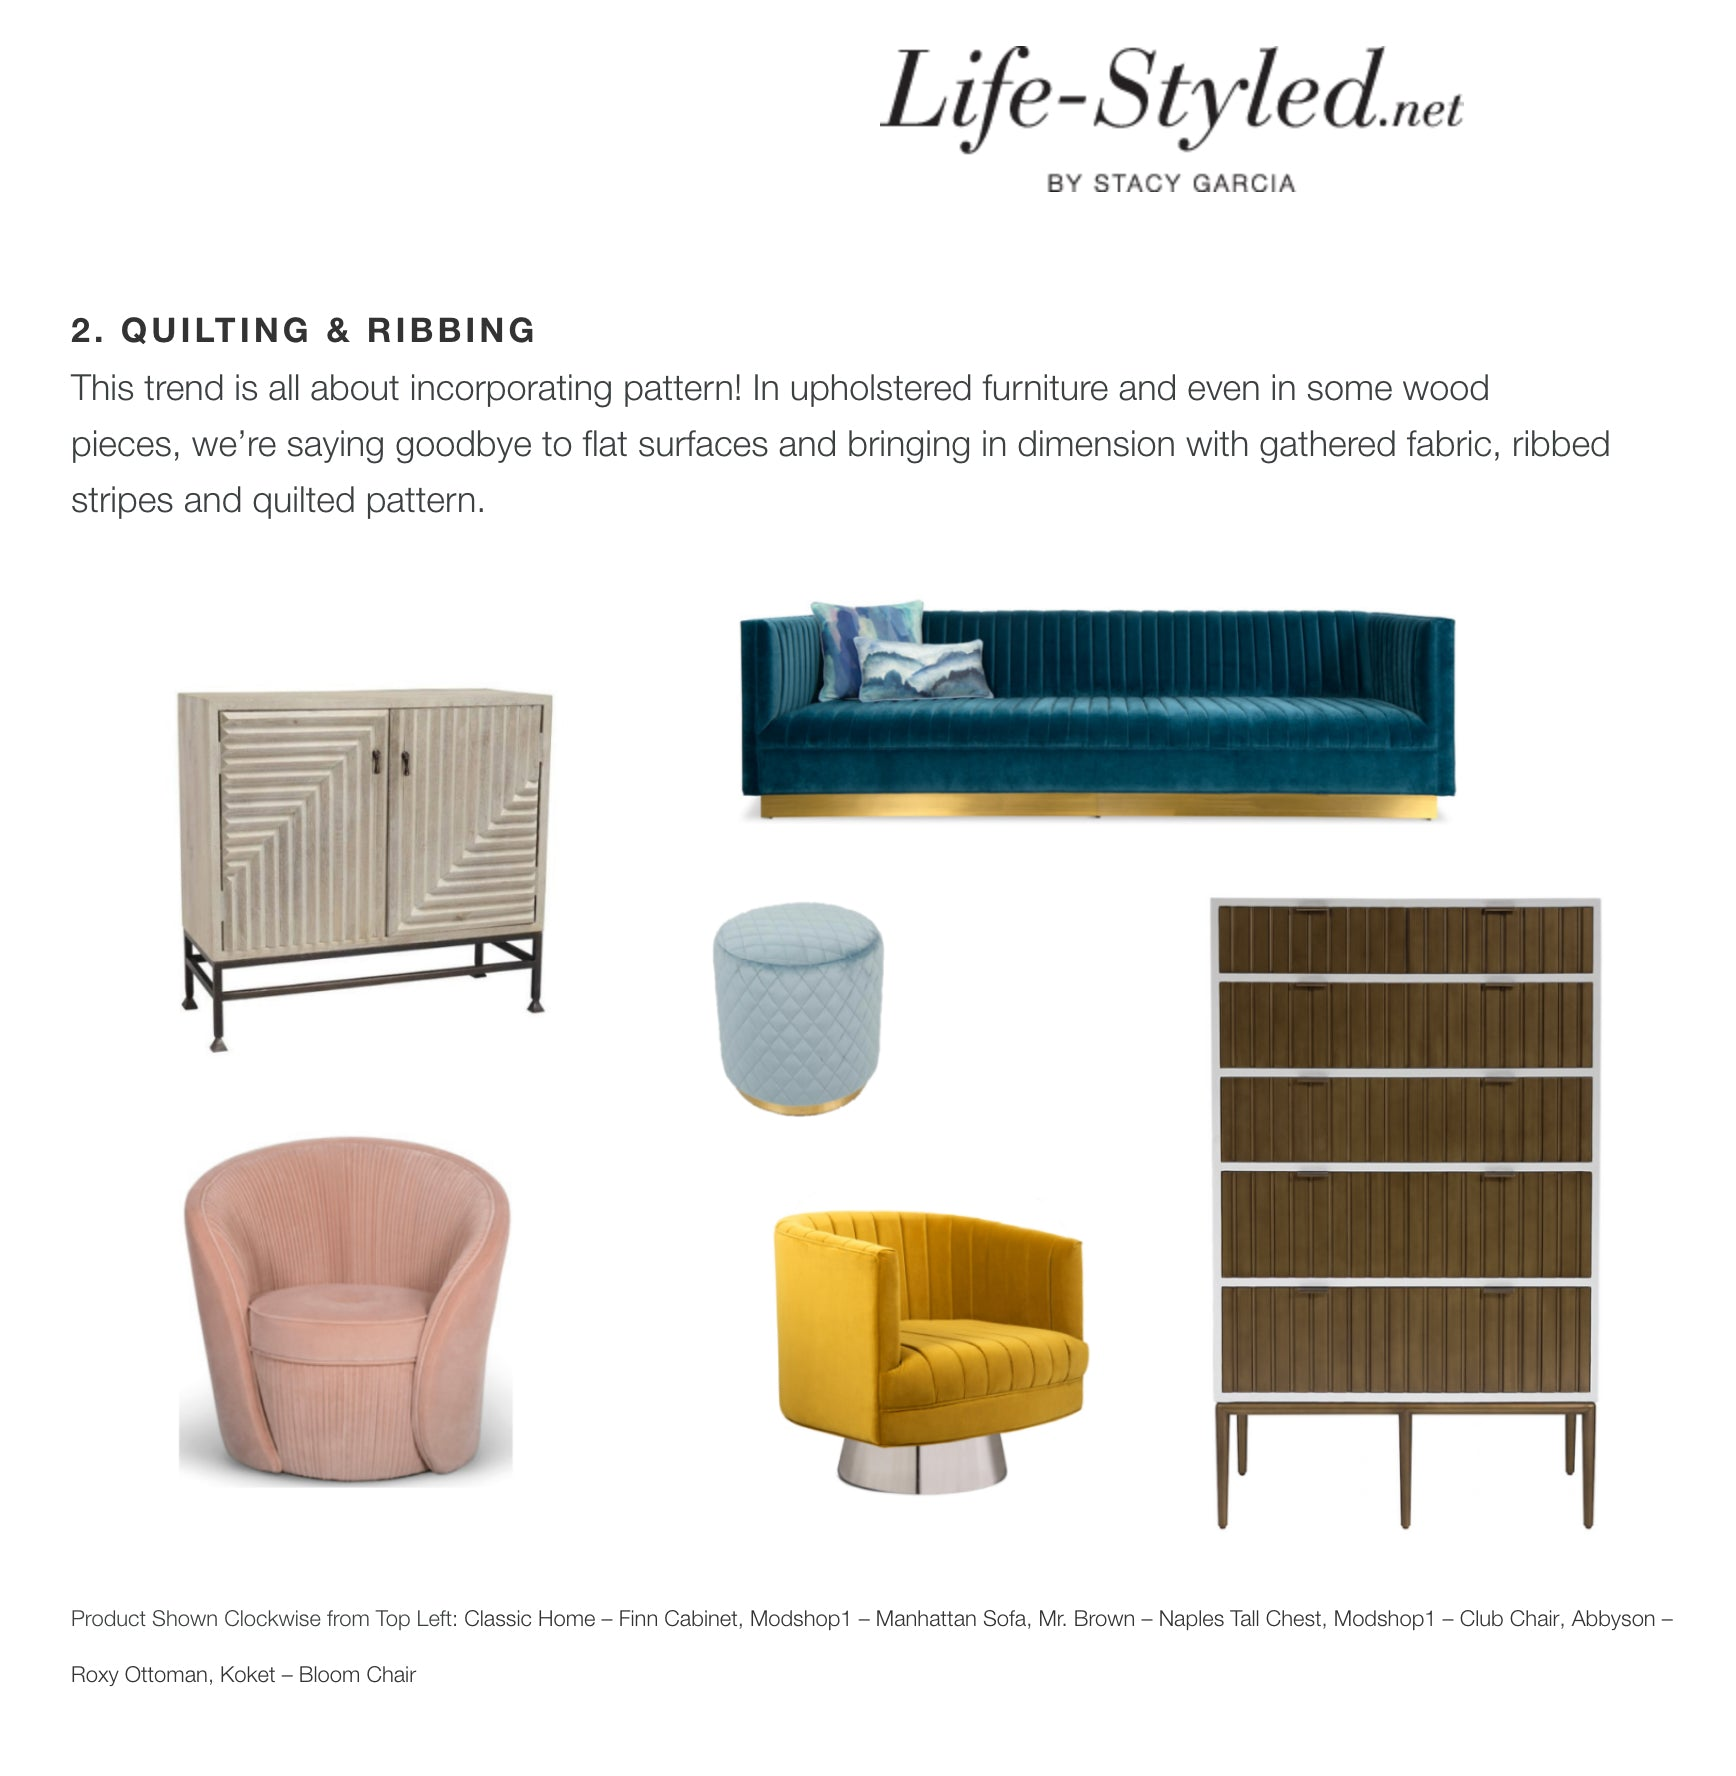 high point market style report article life-styled.net by stacy garcia featuring modshop's manhattan sofa in como cyan velvet